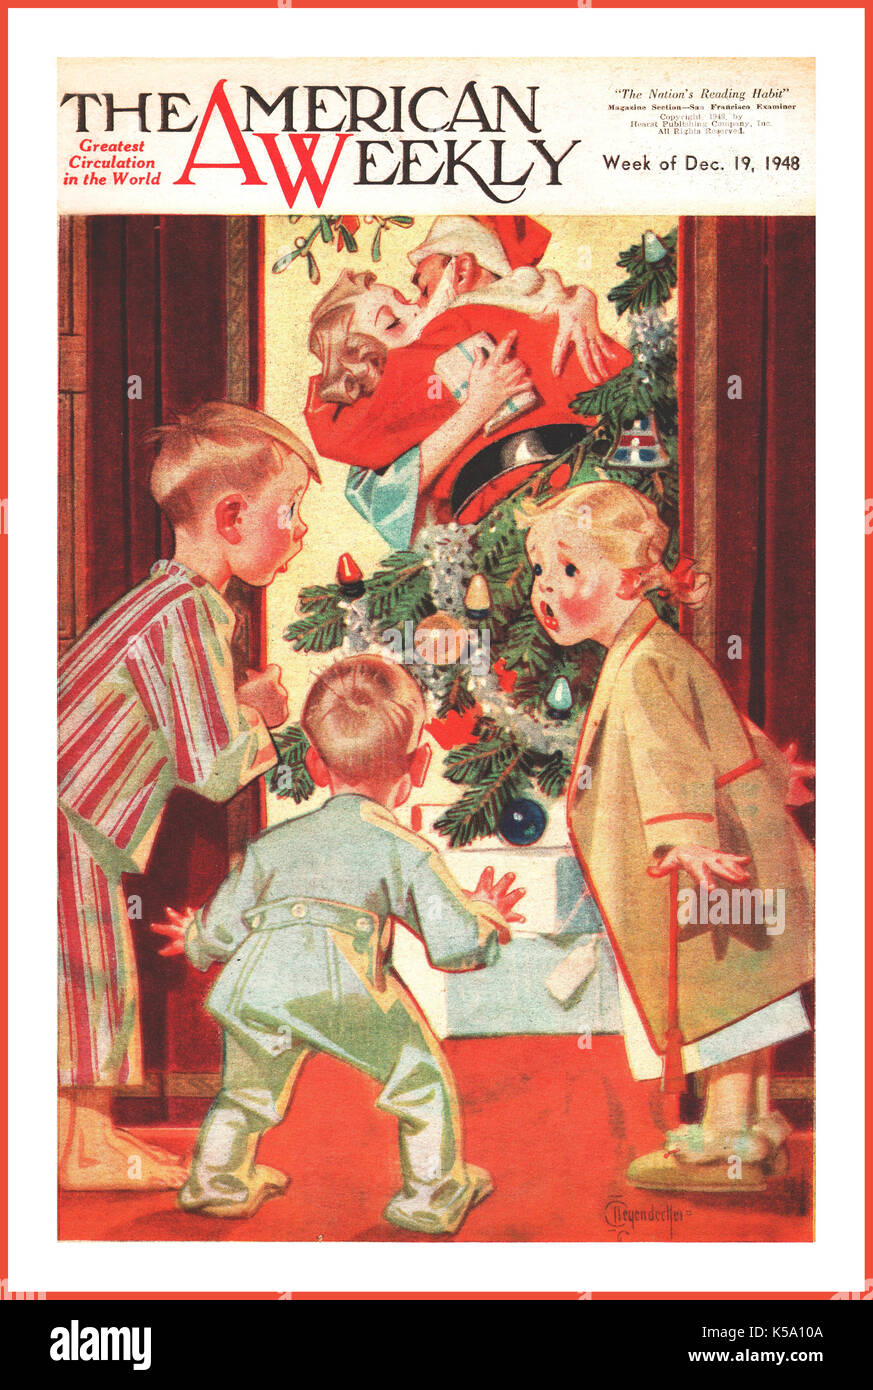 VINTAGE RETRO CHRISTMAS FRONT COVER SCENE 1940's Post War American Weekly showing halcyon happy surprised family of two young boys and a girl watching Father dressed as Father Christmas kissing Mother by the Christmas tree, under the mistletoe. The American Weekly was a Sunday newspaper supplement published by the Hearst Corporation from November 1, 1896, until 1966. - Stock Image